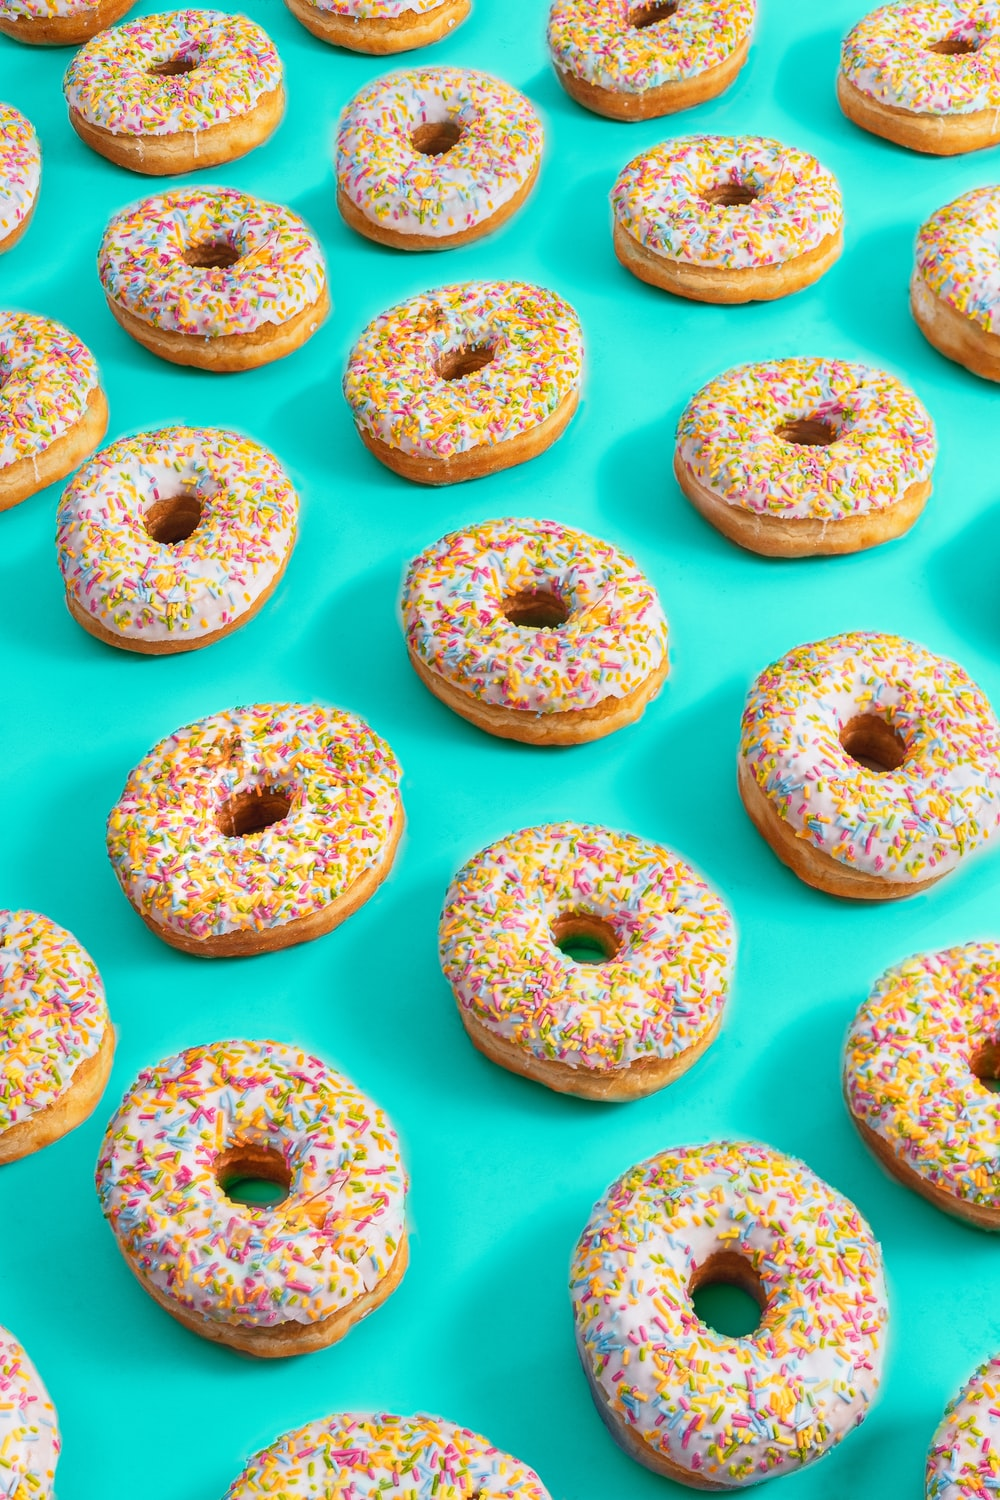 white and pink donuts on white surface